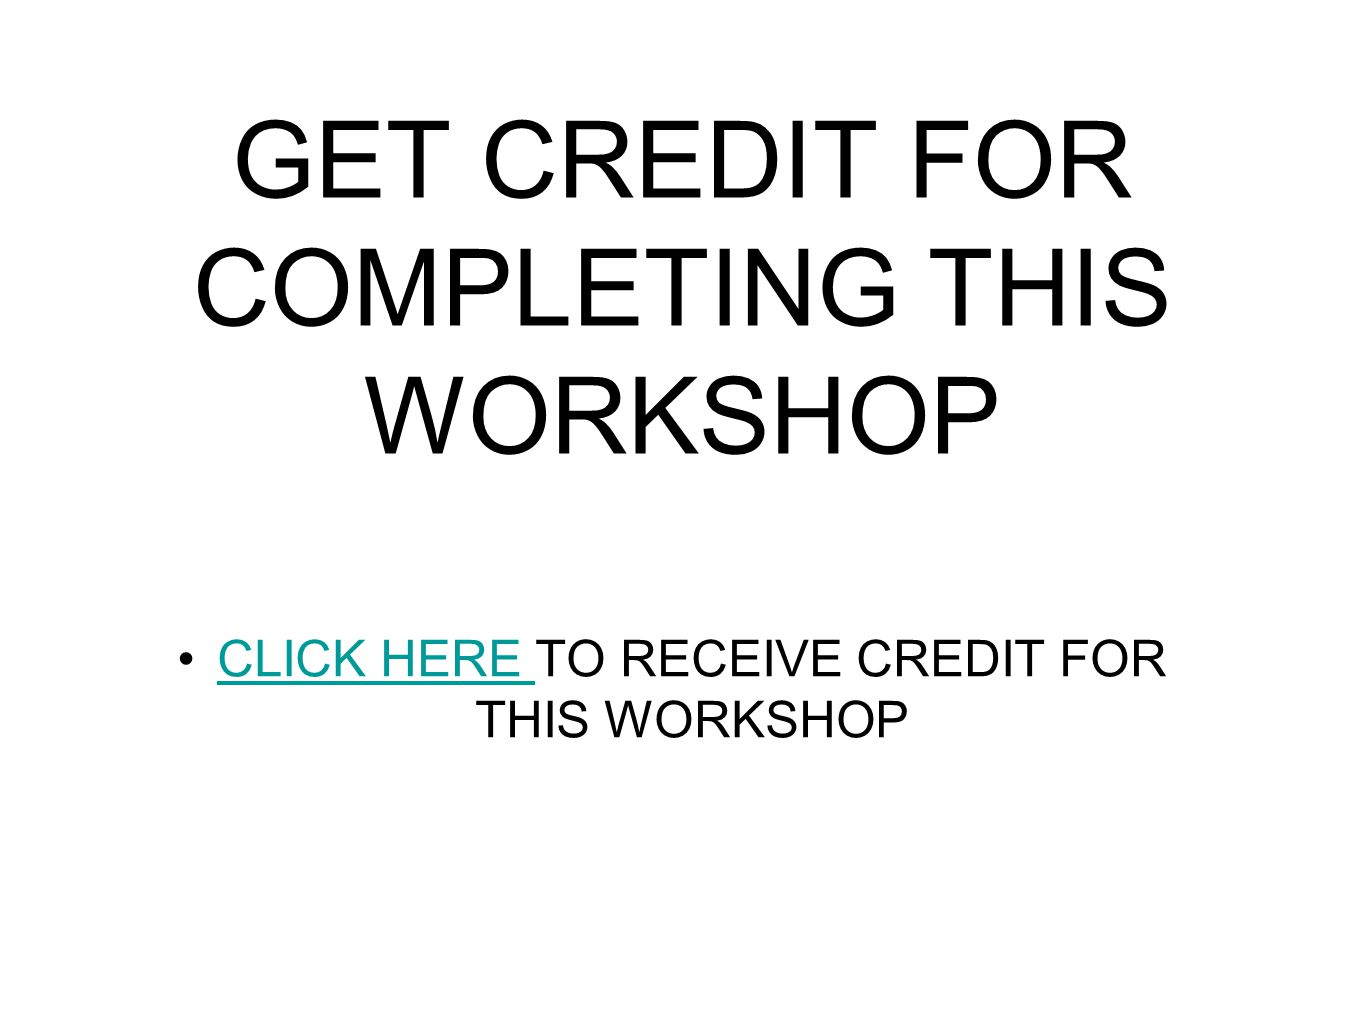 GET CREDIT FOR COMPLETING THIS WORKSHOP CLICK HERE TO RECEIVE CREDIT FOR THIS WORKSHOPCLICK HERE